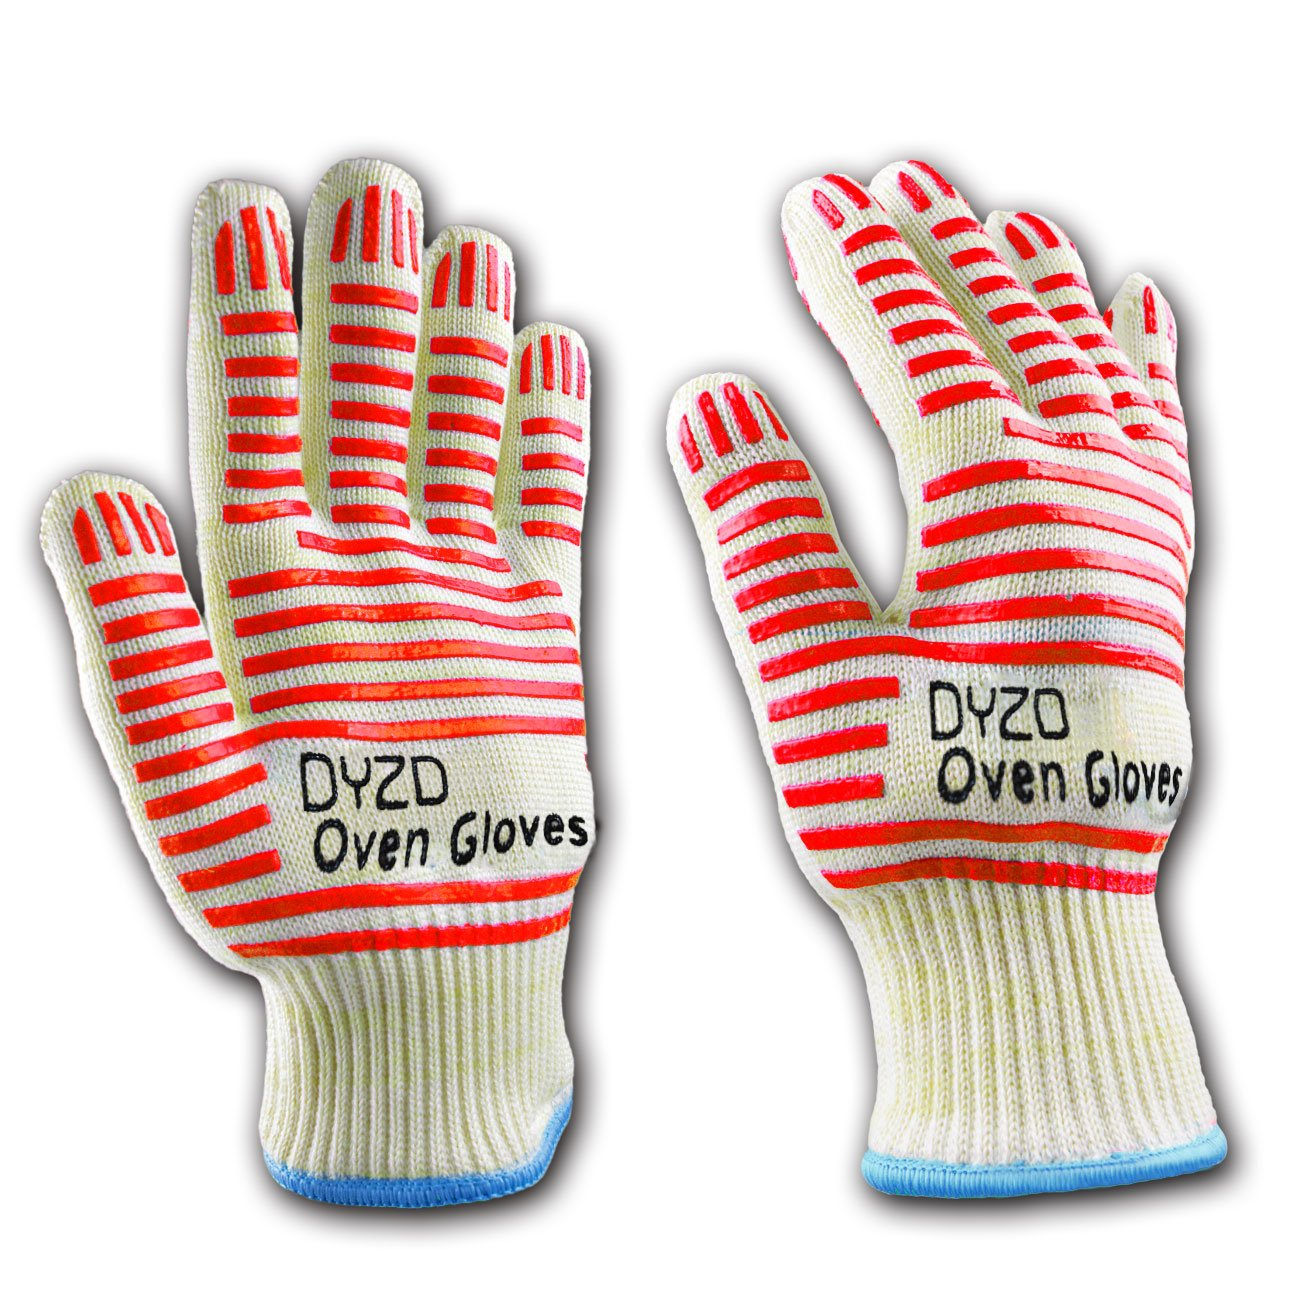 Premium Quality Heat Resistant Oven Gloves, Non-Slip Silicone, One Size fits Most, Flexible & Lightweight, Best for Oven, Fireplace, Barbecue, Baking, Microwaving, 1 Pair (White) ZHAOWEI